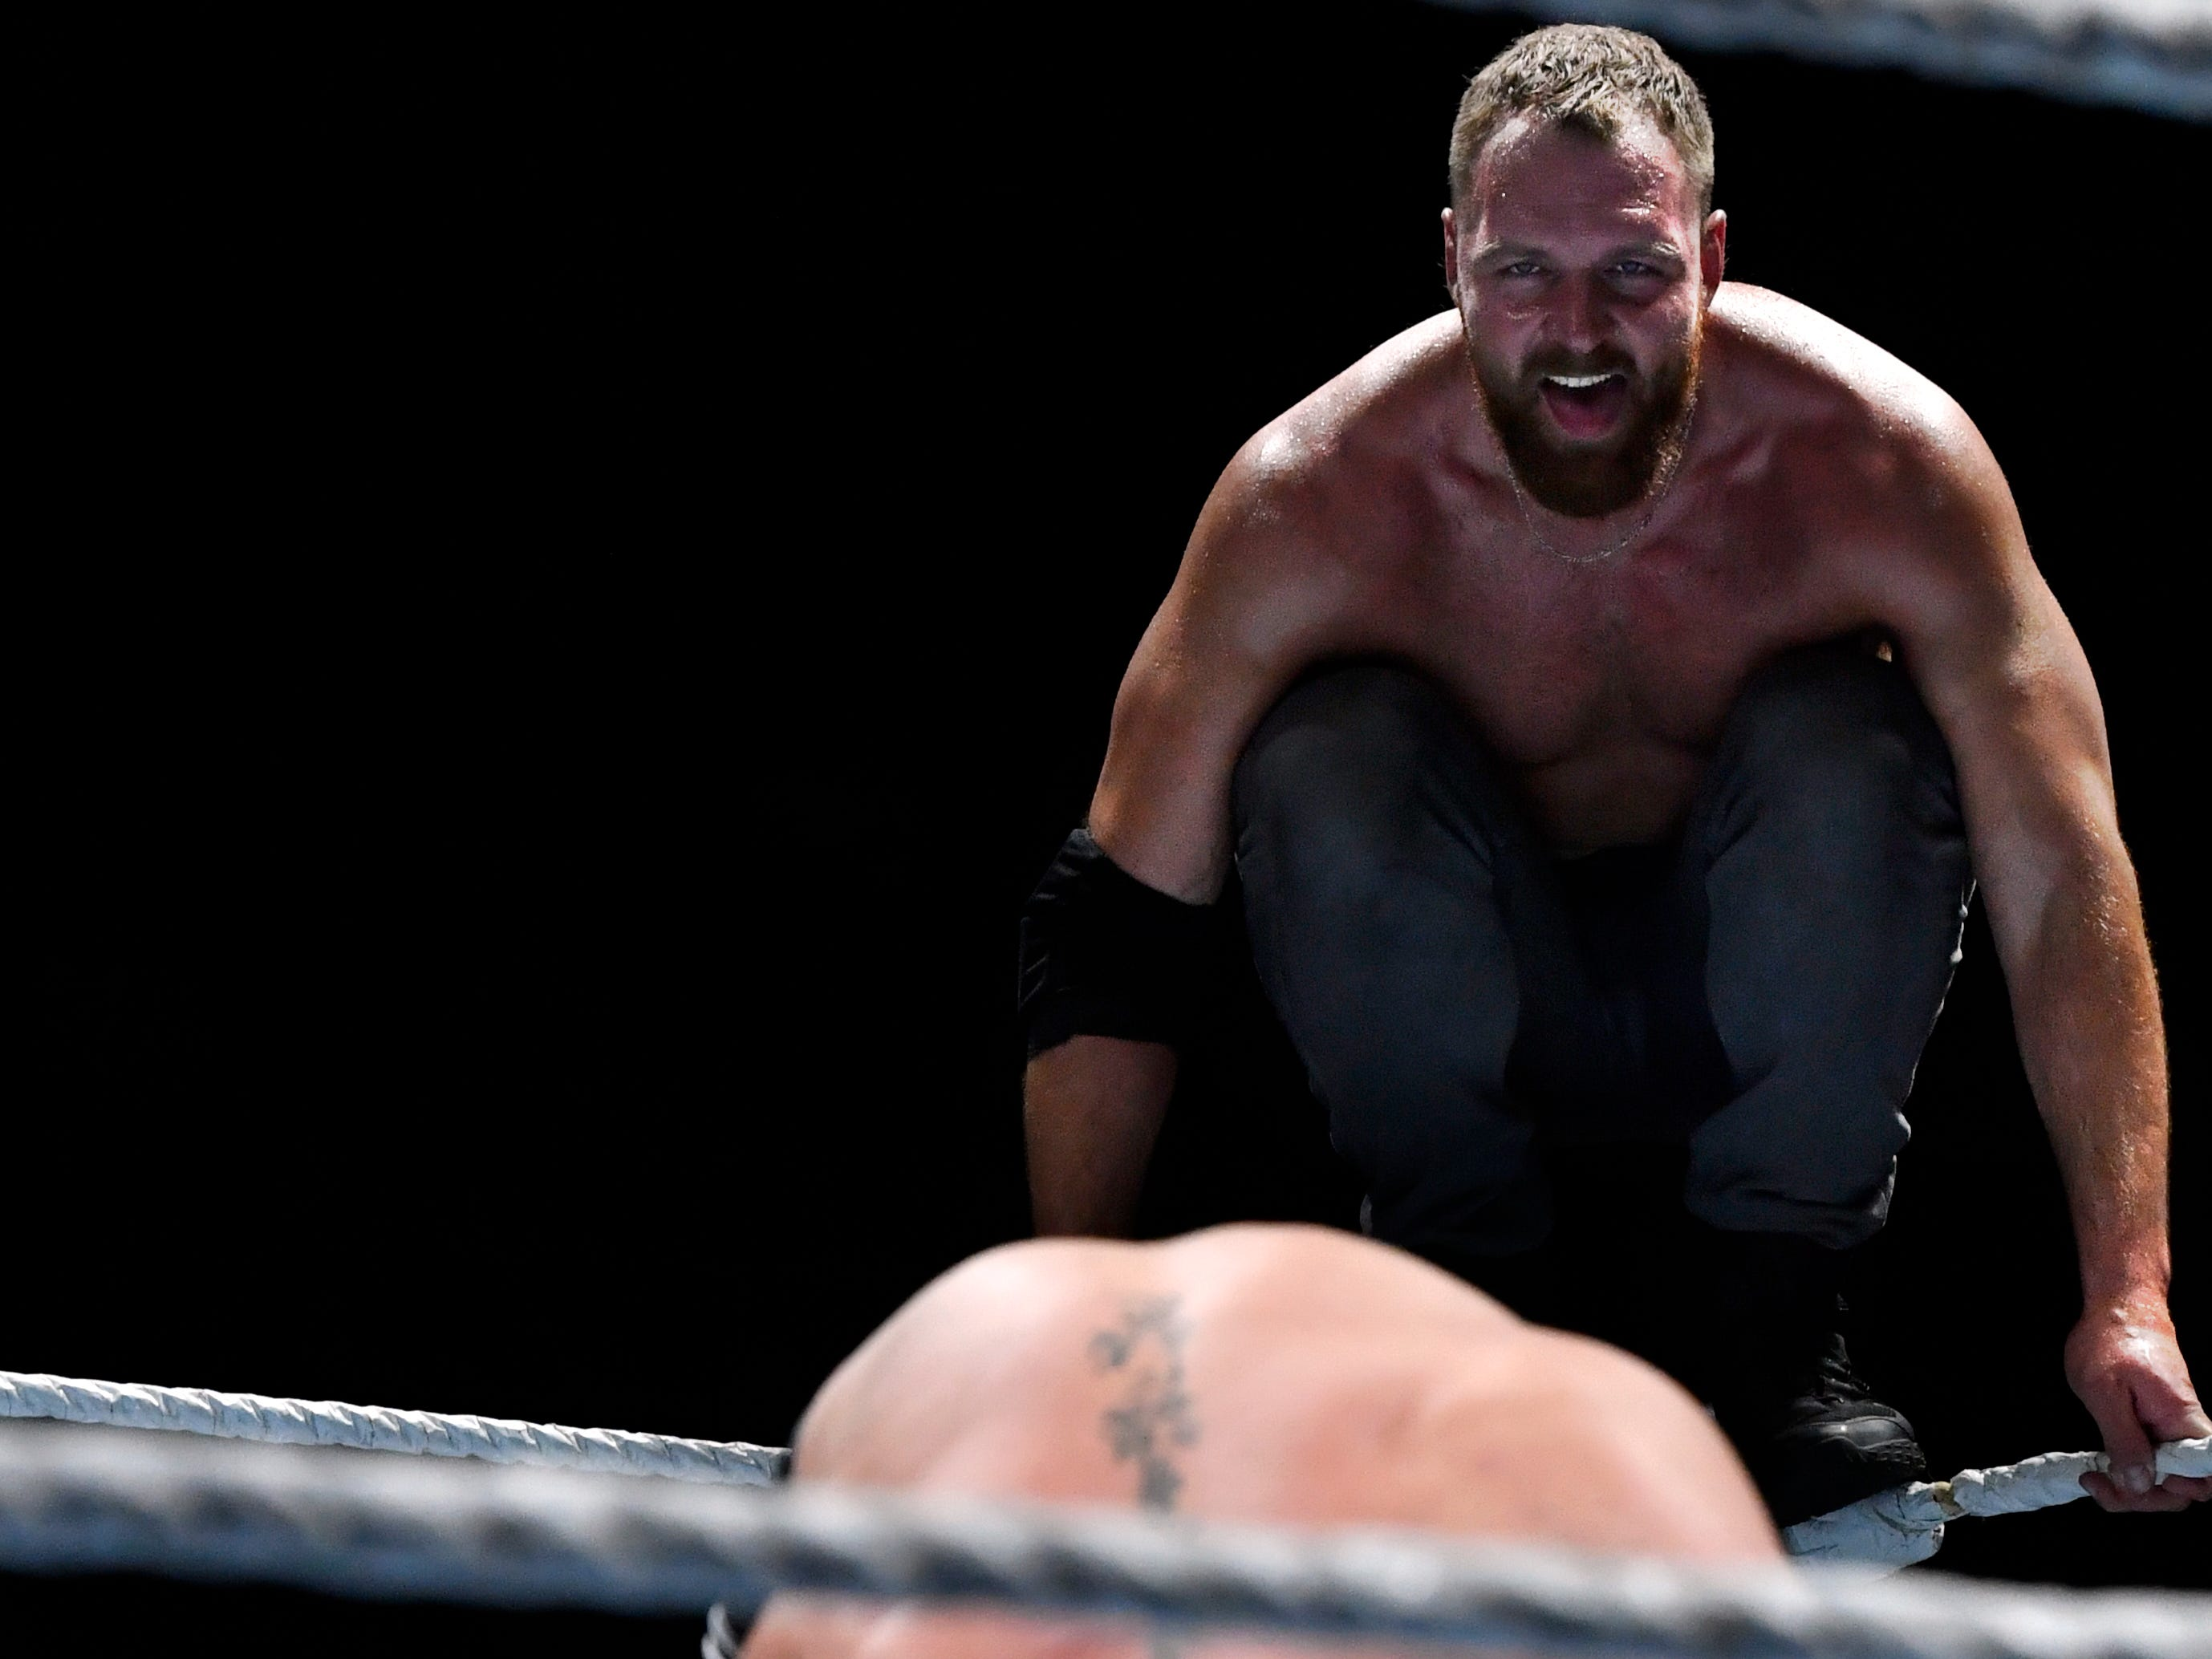 Dean Ambrose prepares to leap onto Seth Rollins from the top of the ropes during Saturday's WWE Live wrestling event Jan. 19, 2019. Held at the Taylor County Coliseum, the evening featured a colorful array of World Wrestling Entertainment stars.